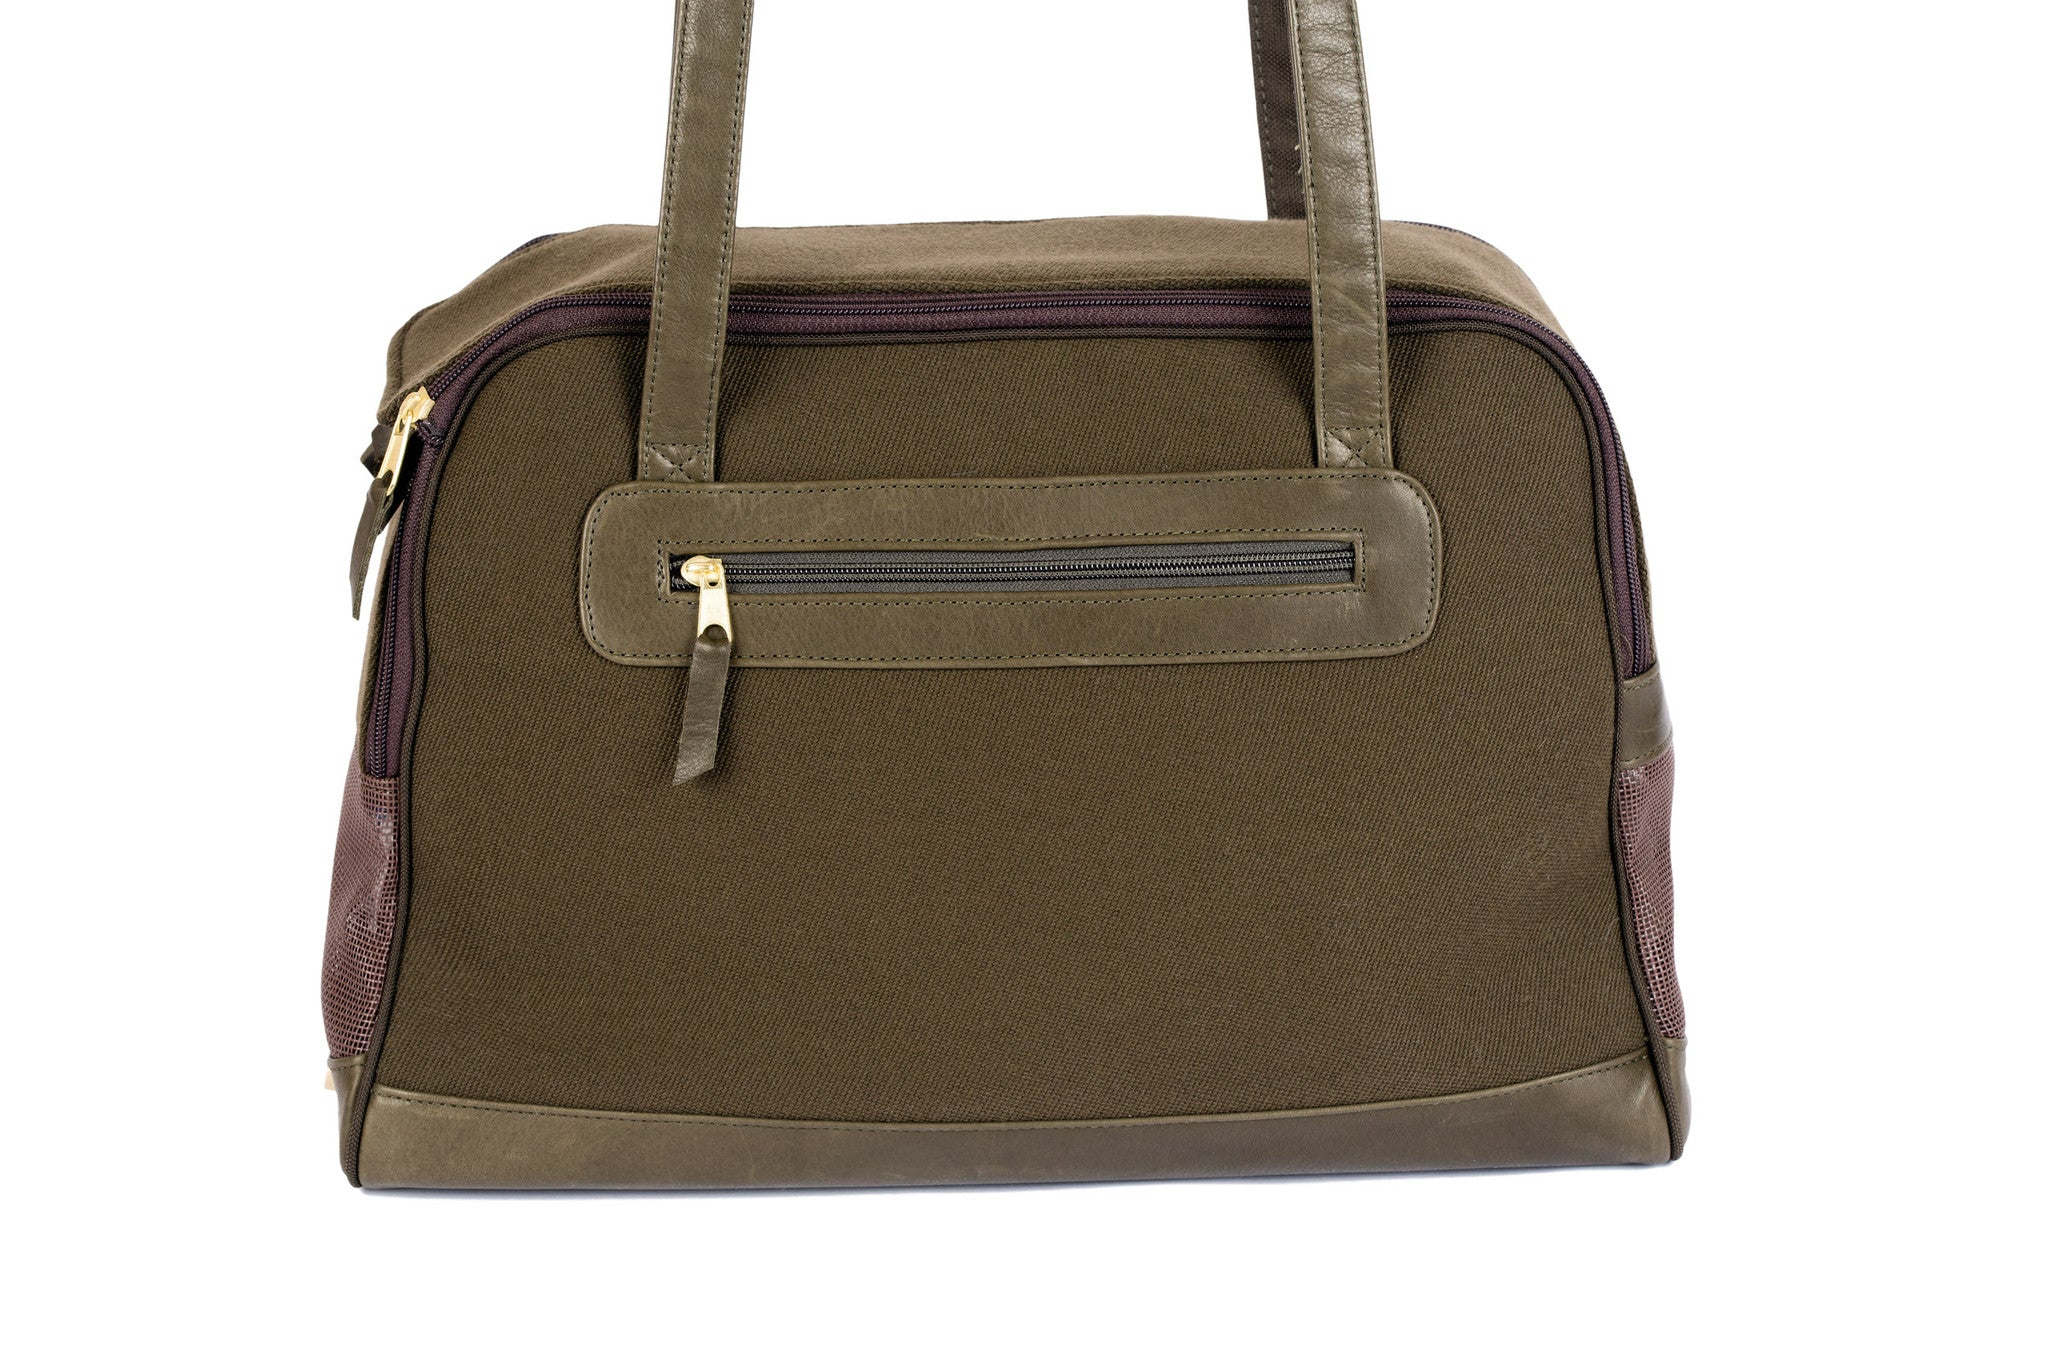 Dog Carrier - Cashmere/Wool Blend w/ Leather Straps - 4 Color Options